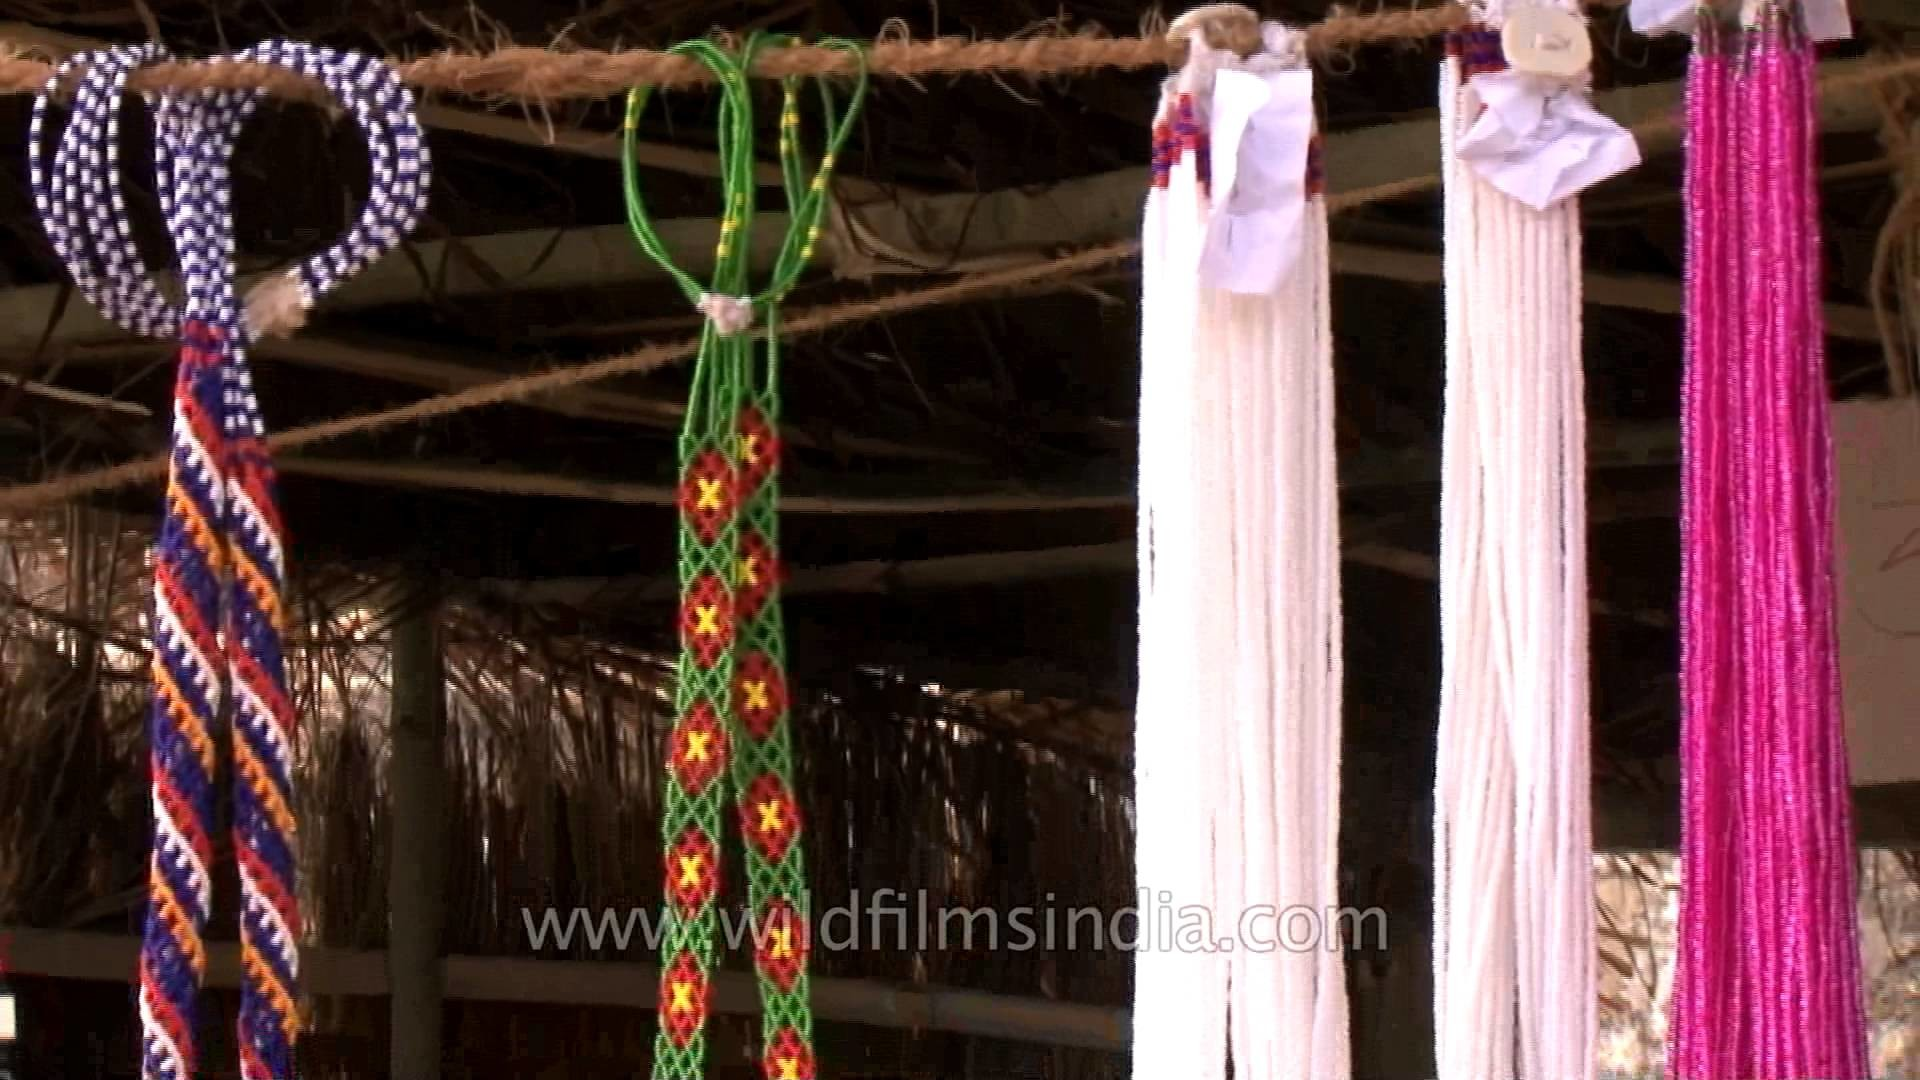 Necklace made out of beads showcased during the Hornbill festival in Nagaland